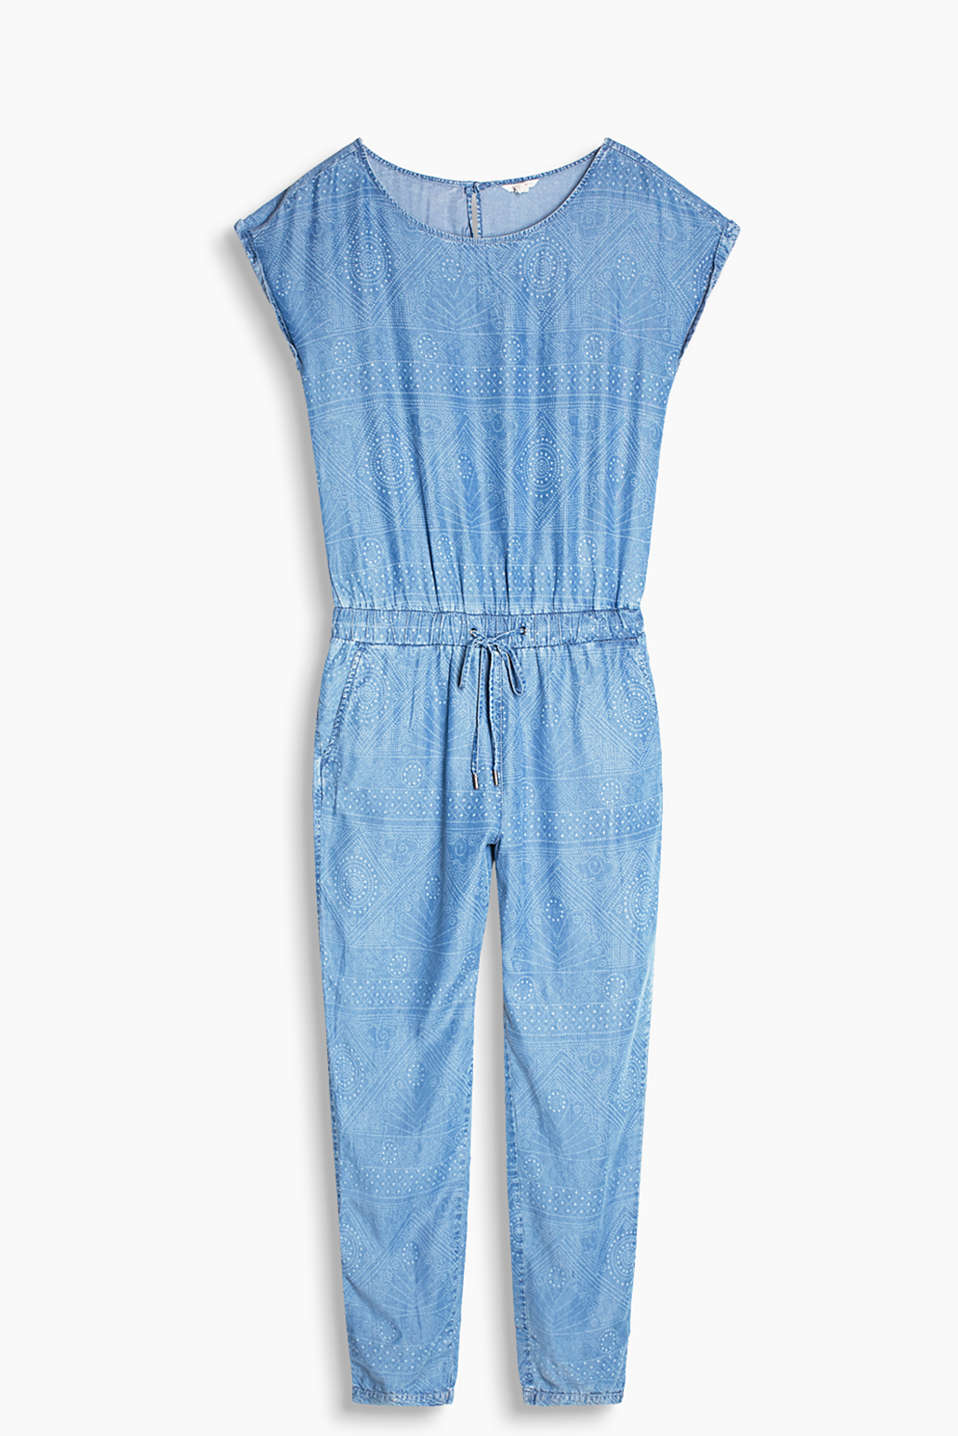 Fließender Jumpsuit im Denim-Look mit dekorativem Ornament-Print